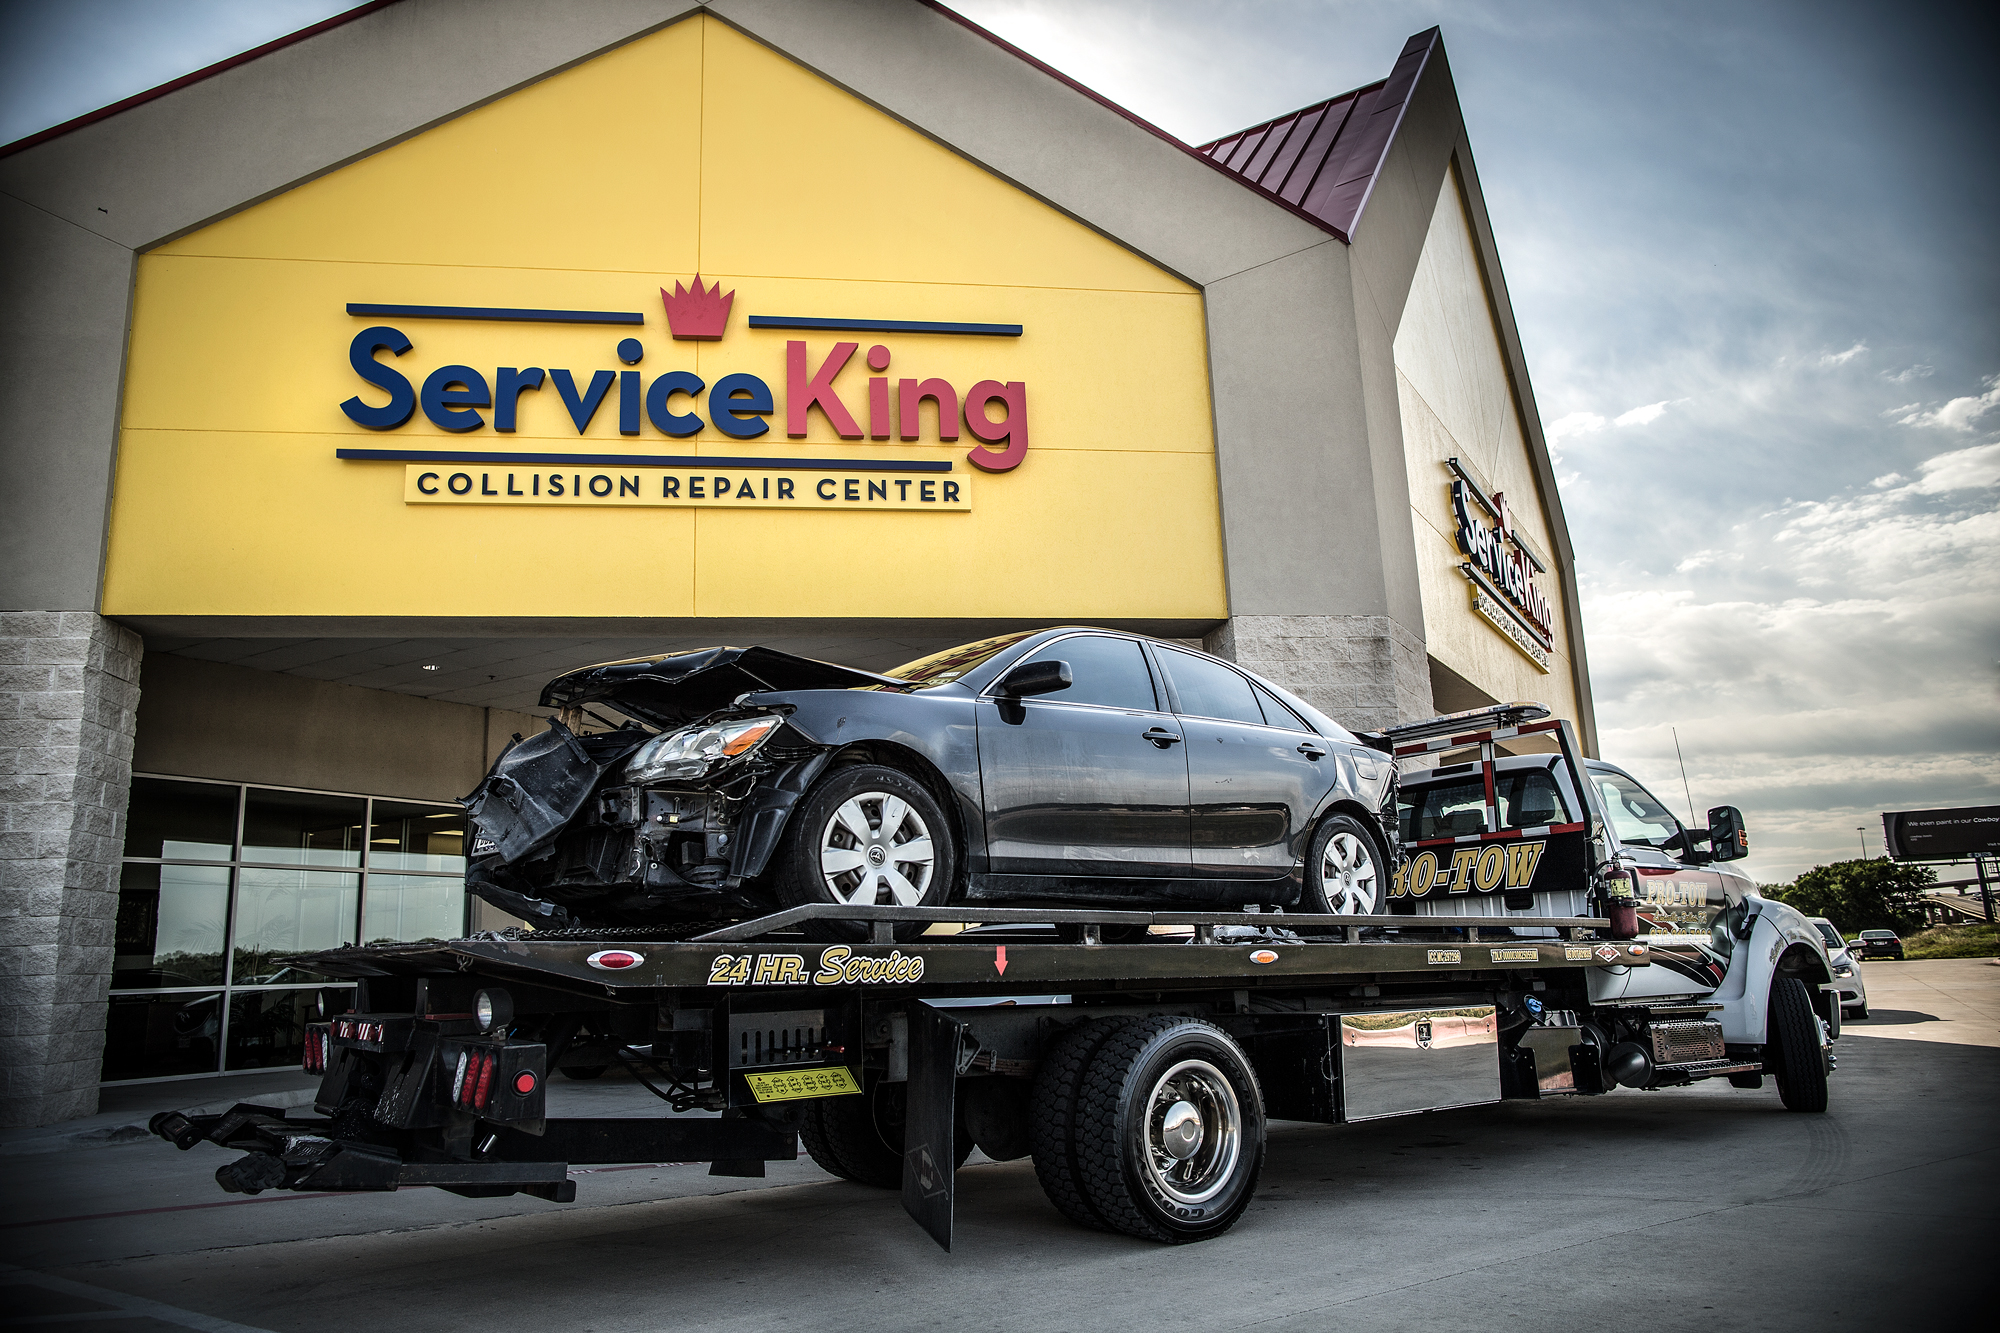 Service King Collision Repair Irving 3910 W Airport Fwy, Irving, TX 75062    YP.com